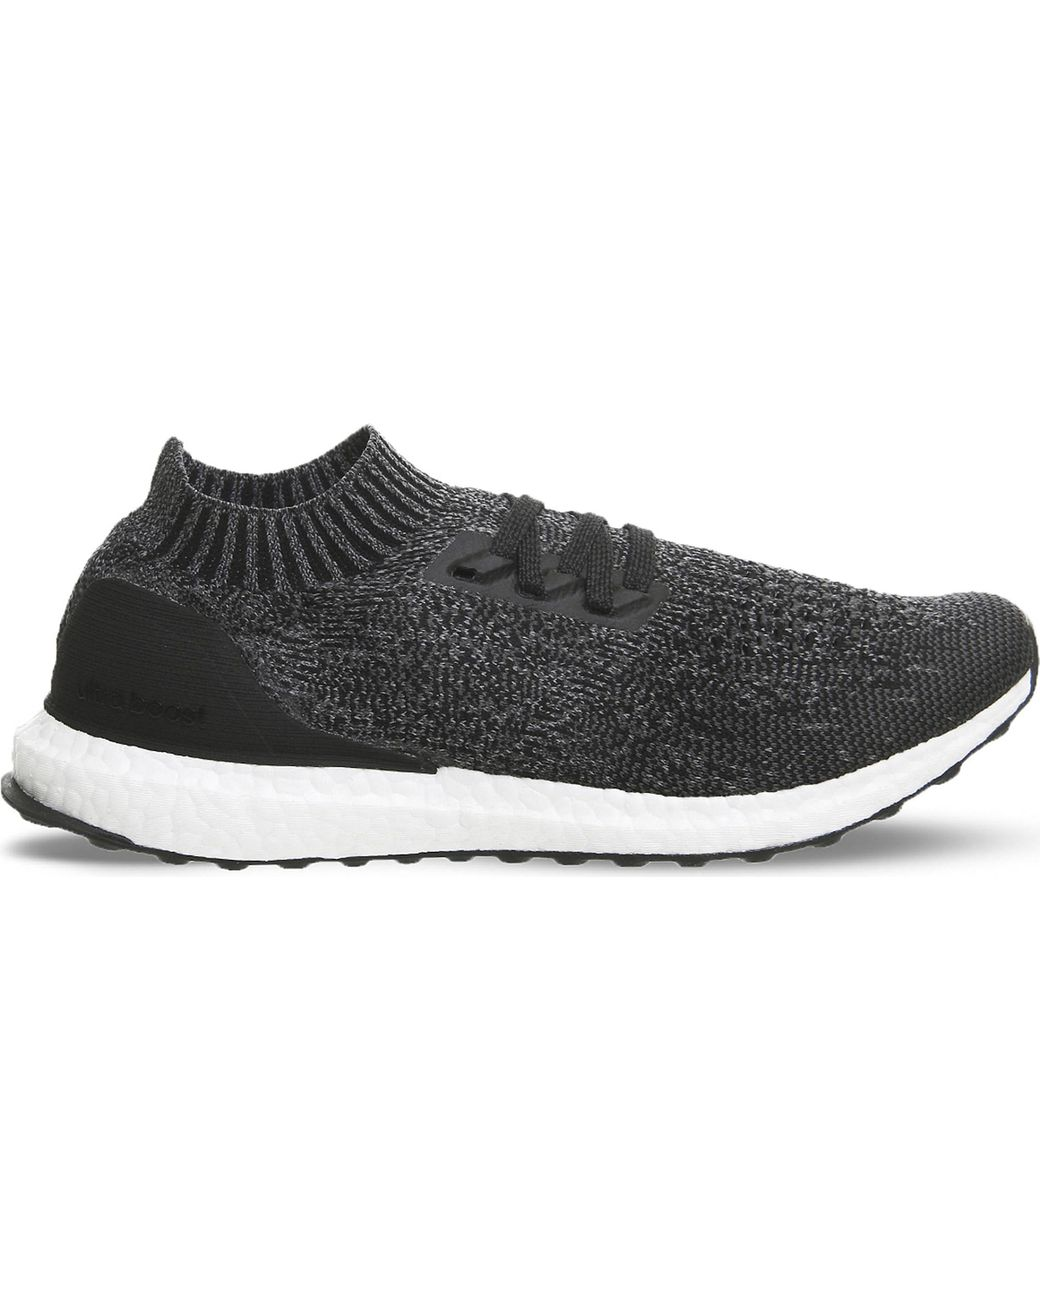 e149b28ff6f68 adidas Ultra Boost Uncaged Primeknit Trainers in Black for Men - Lyst